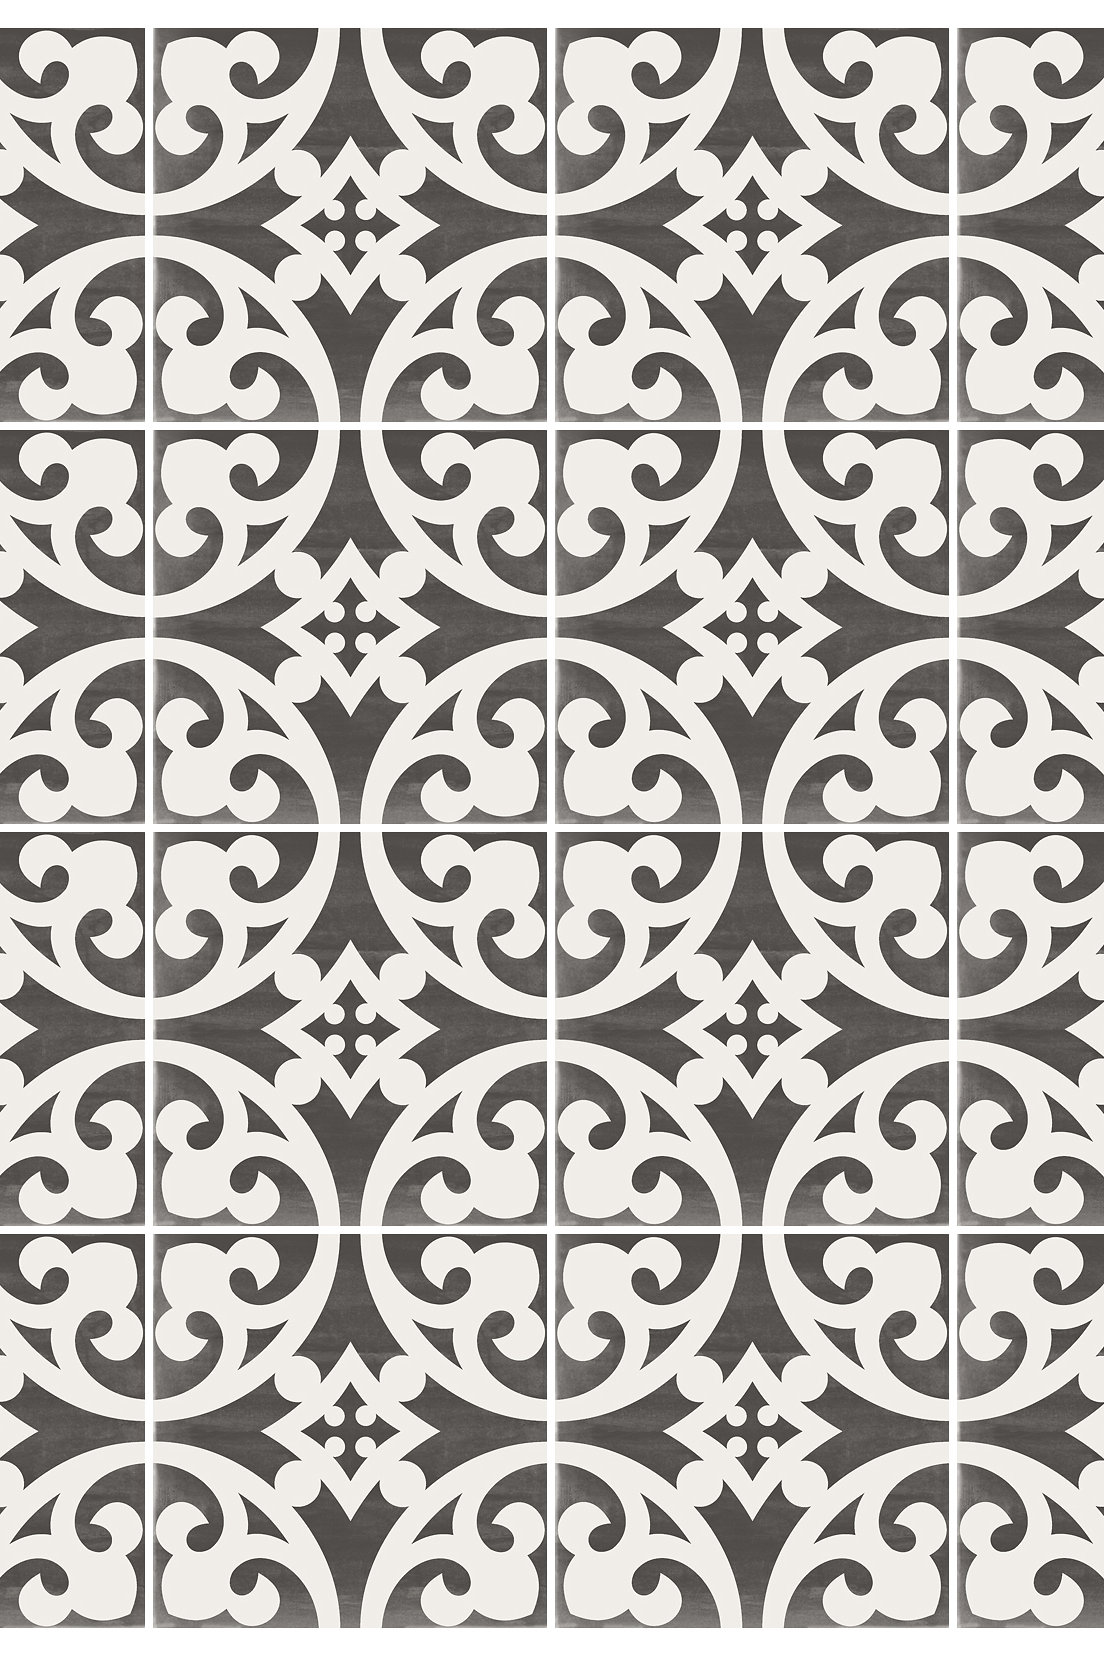 Quadrostyle vinyl floor tile sticker citadel black quadrostyle offers you a new way to renovate your floors without hiring a tradesman our vinyl floor tile stickers are designed to cover your old floor dailygadgetfo Image collections